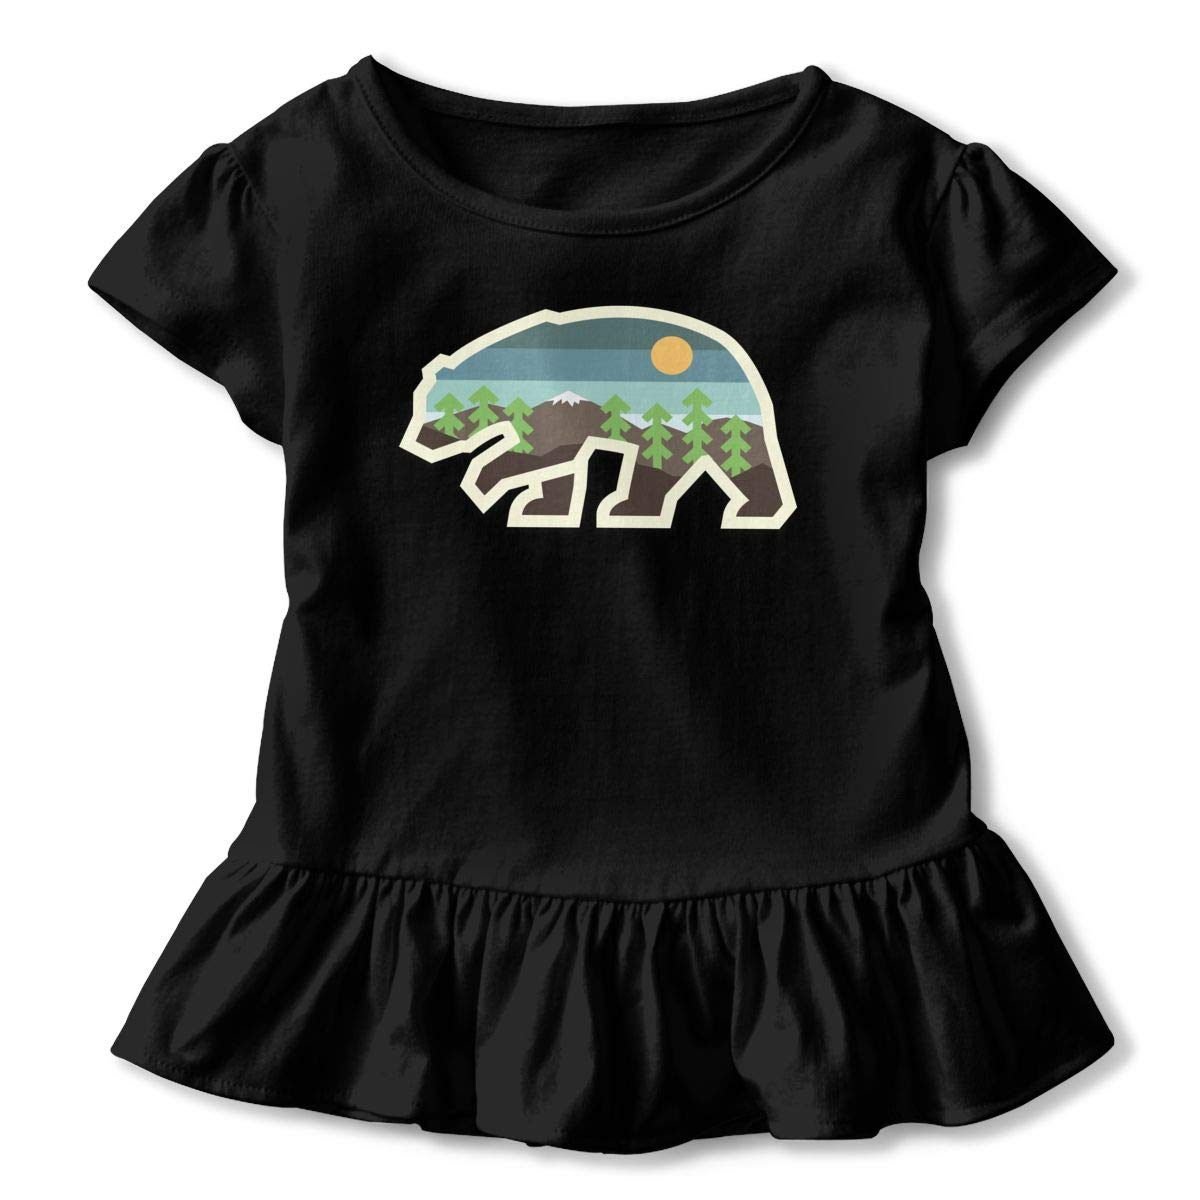 JVNSS Mountain Bear Shirt Printed Toddler//Infant Flounced T Shirts Basic Shirt for 2-6T Kids Girls